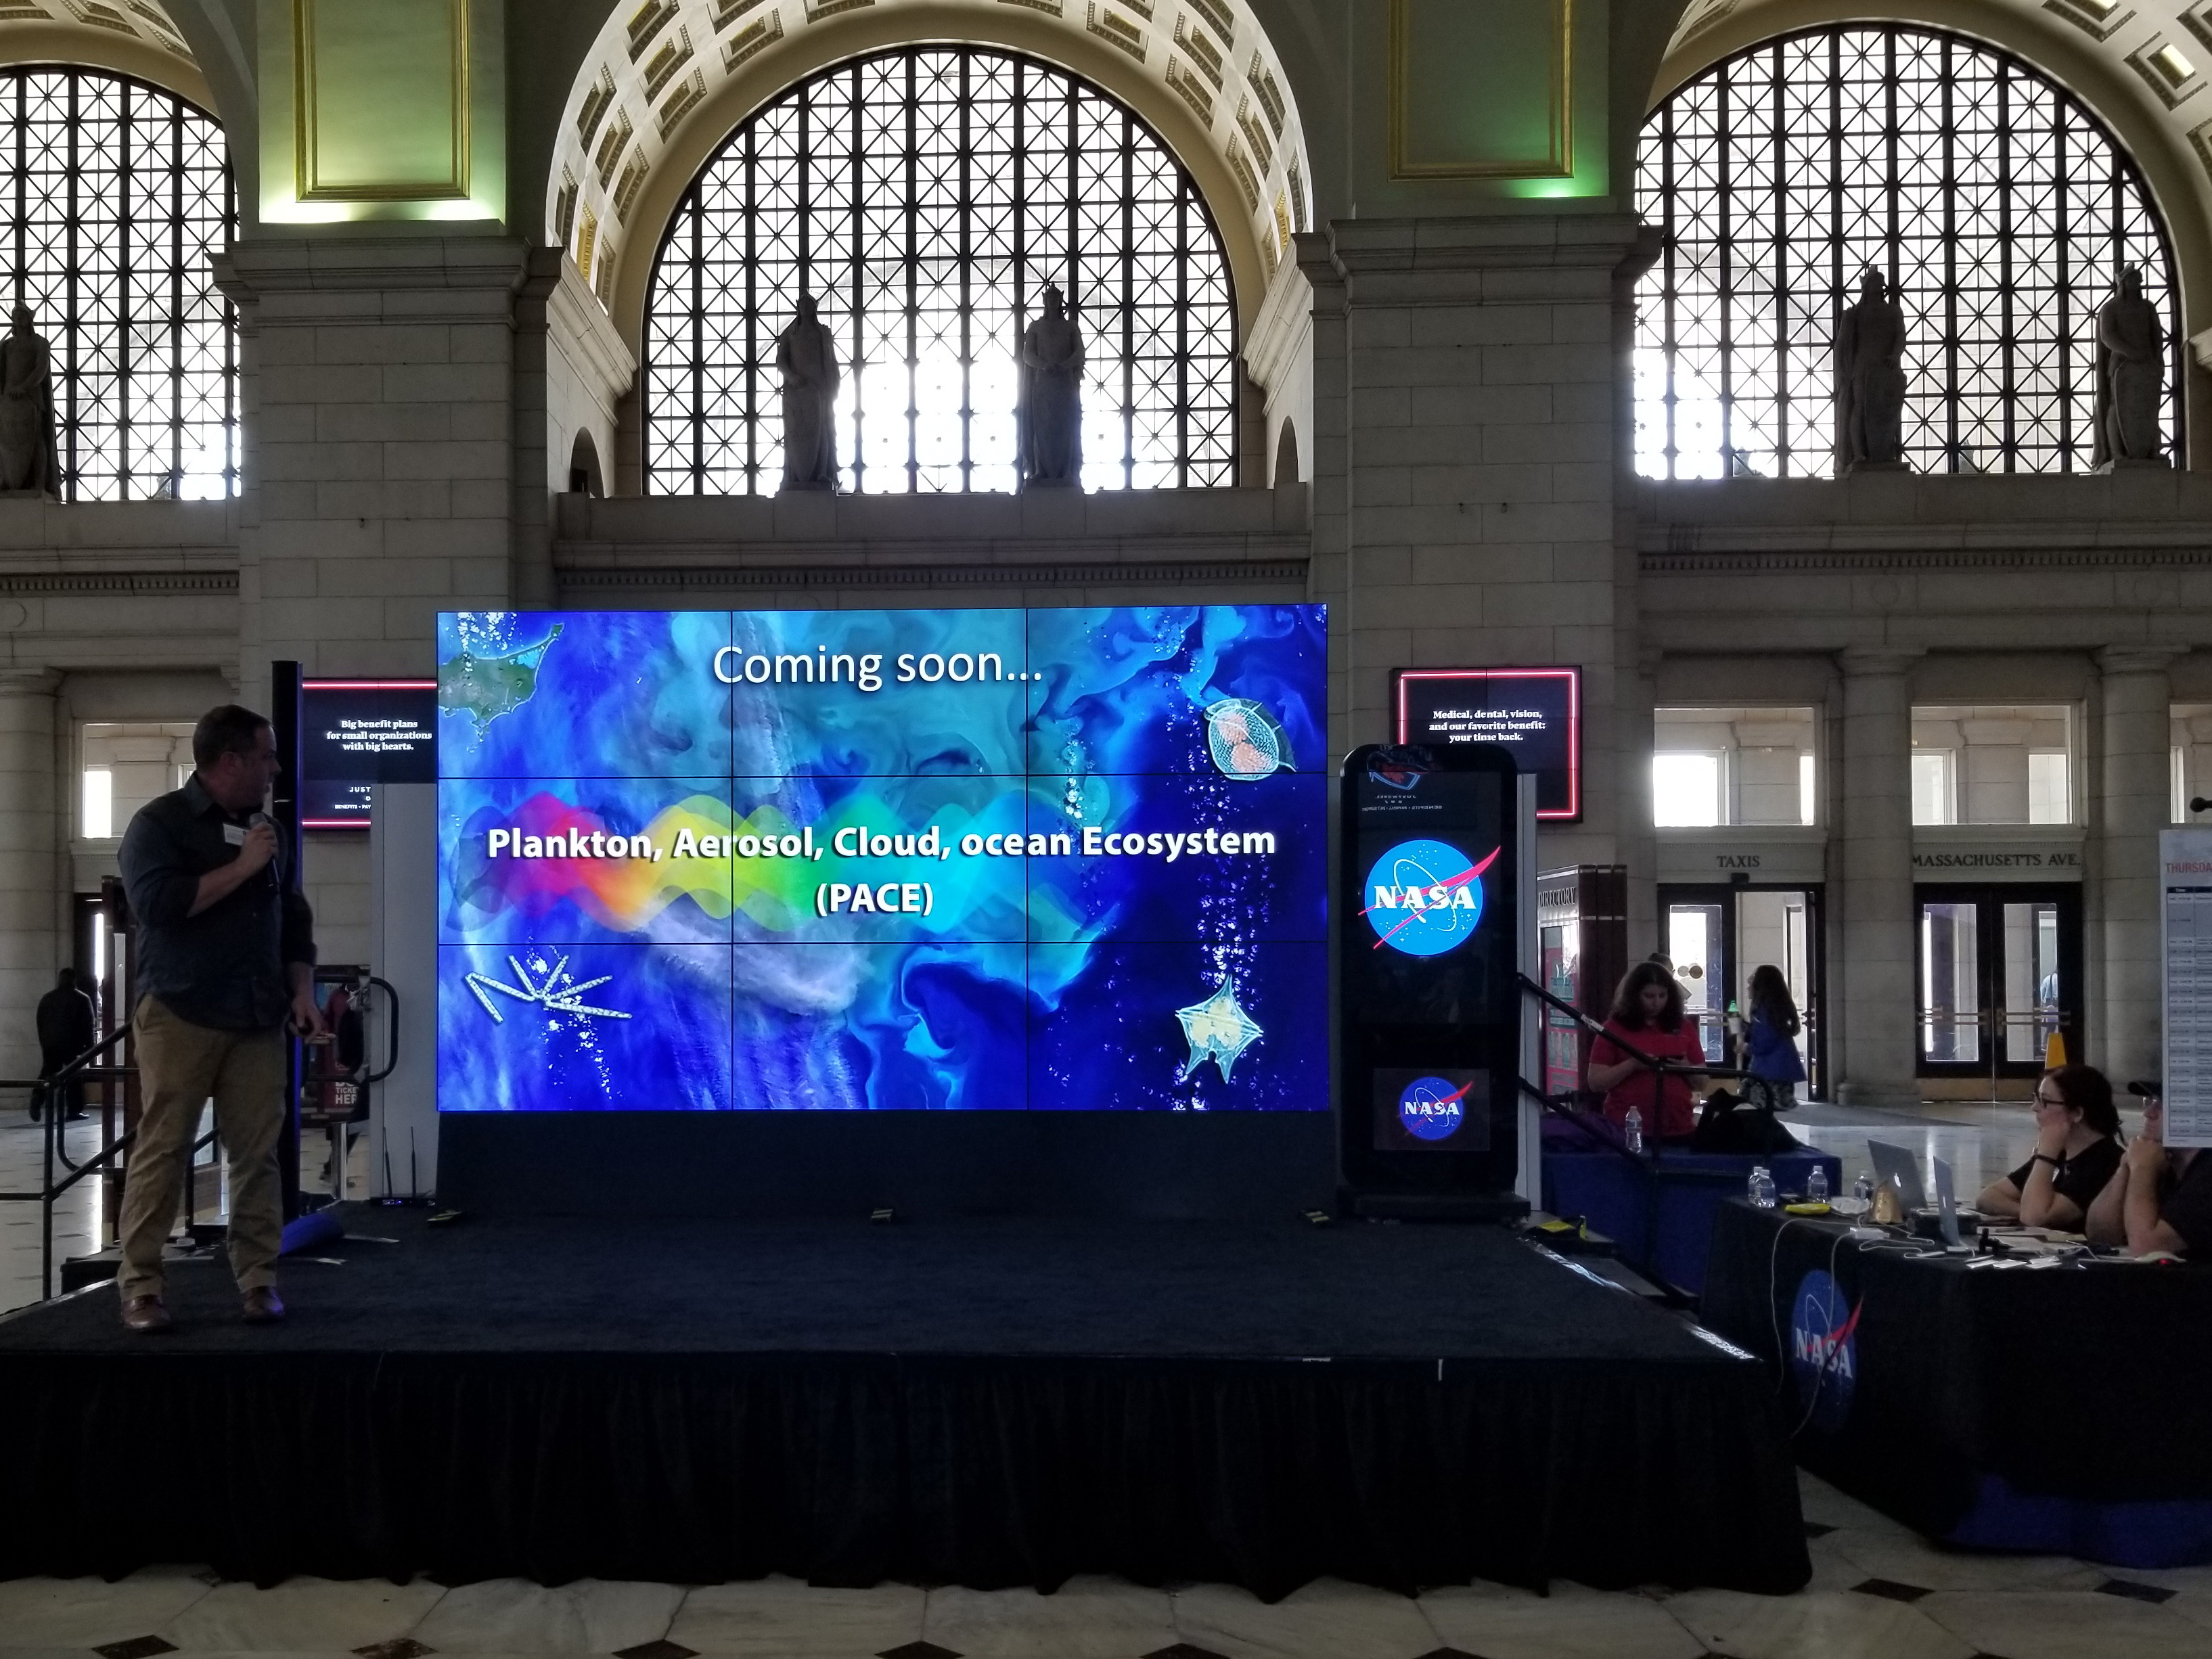 Dr. Jeremy Werdell, PACE Project Scientist, presents a hyperwall talk at the 2018 NASA Earth Day event at Union Station in Washington D.C.